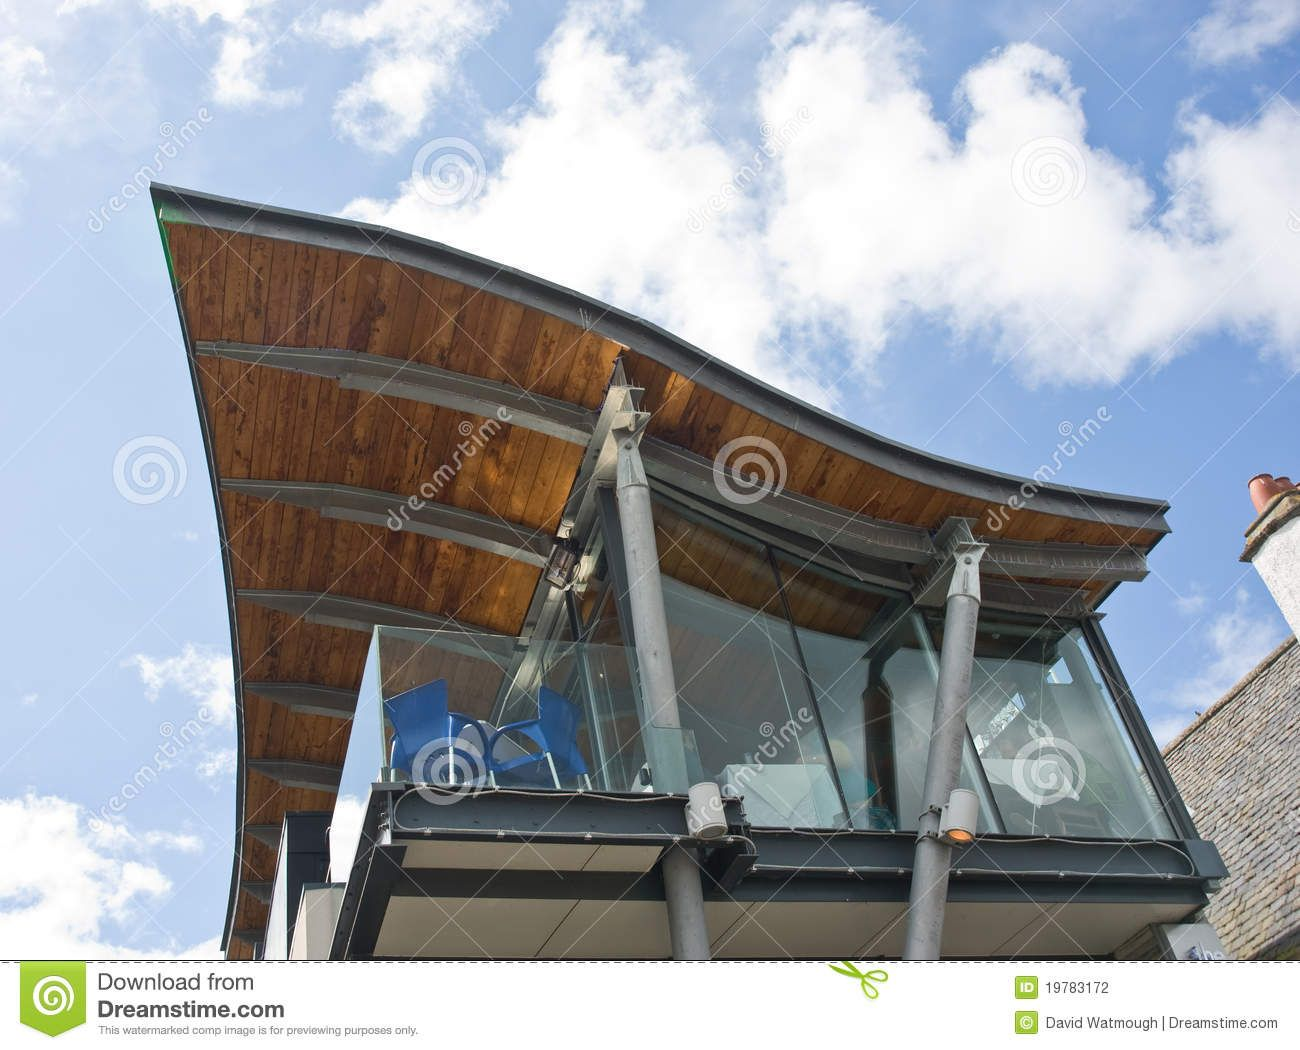 Pin By Alice Tan On Roof Roof Design Roof Architecture Modern Roofing